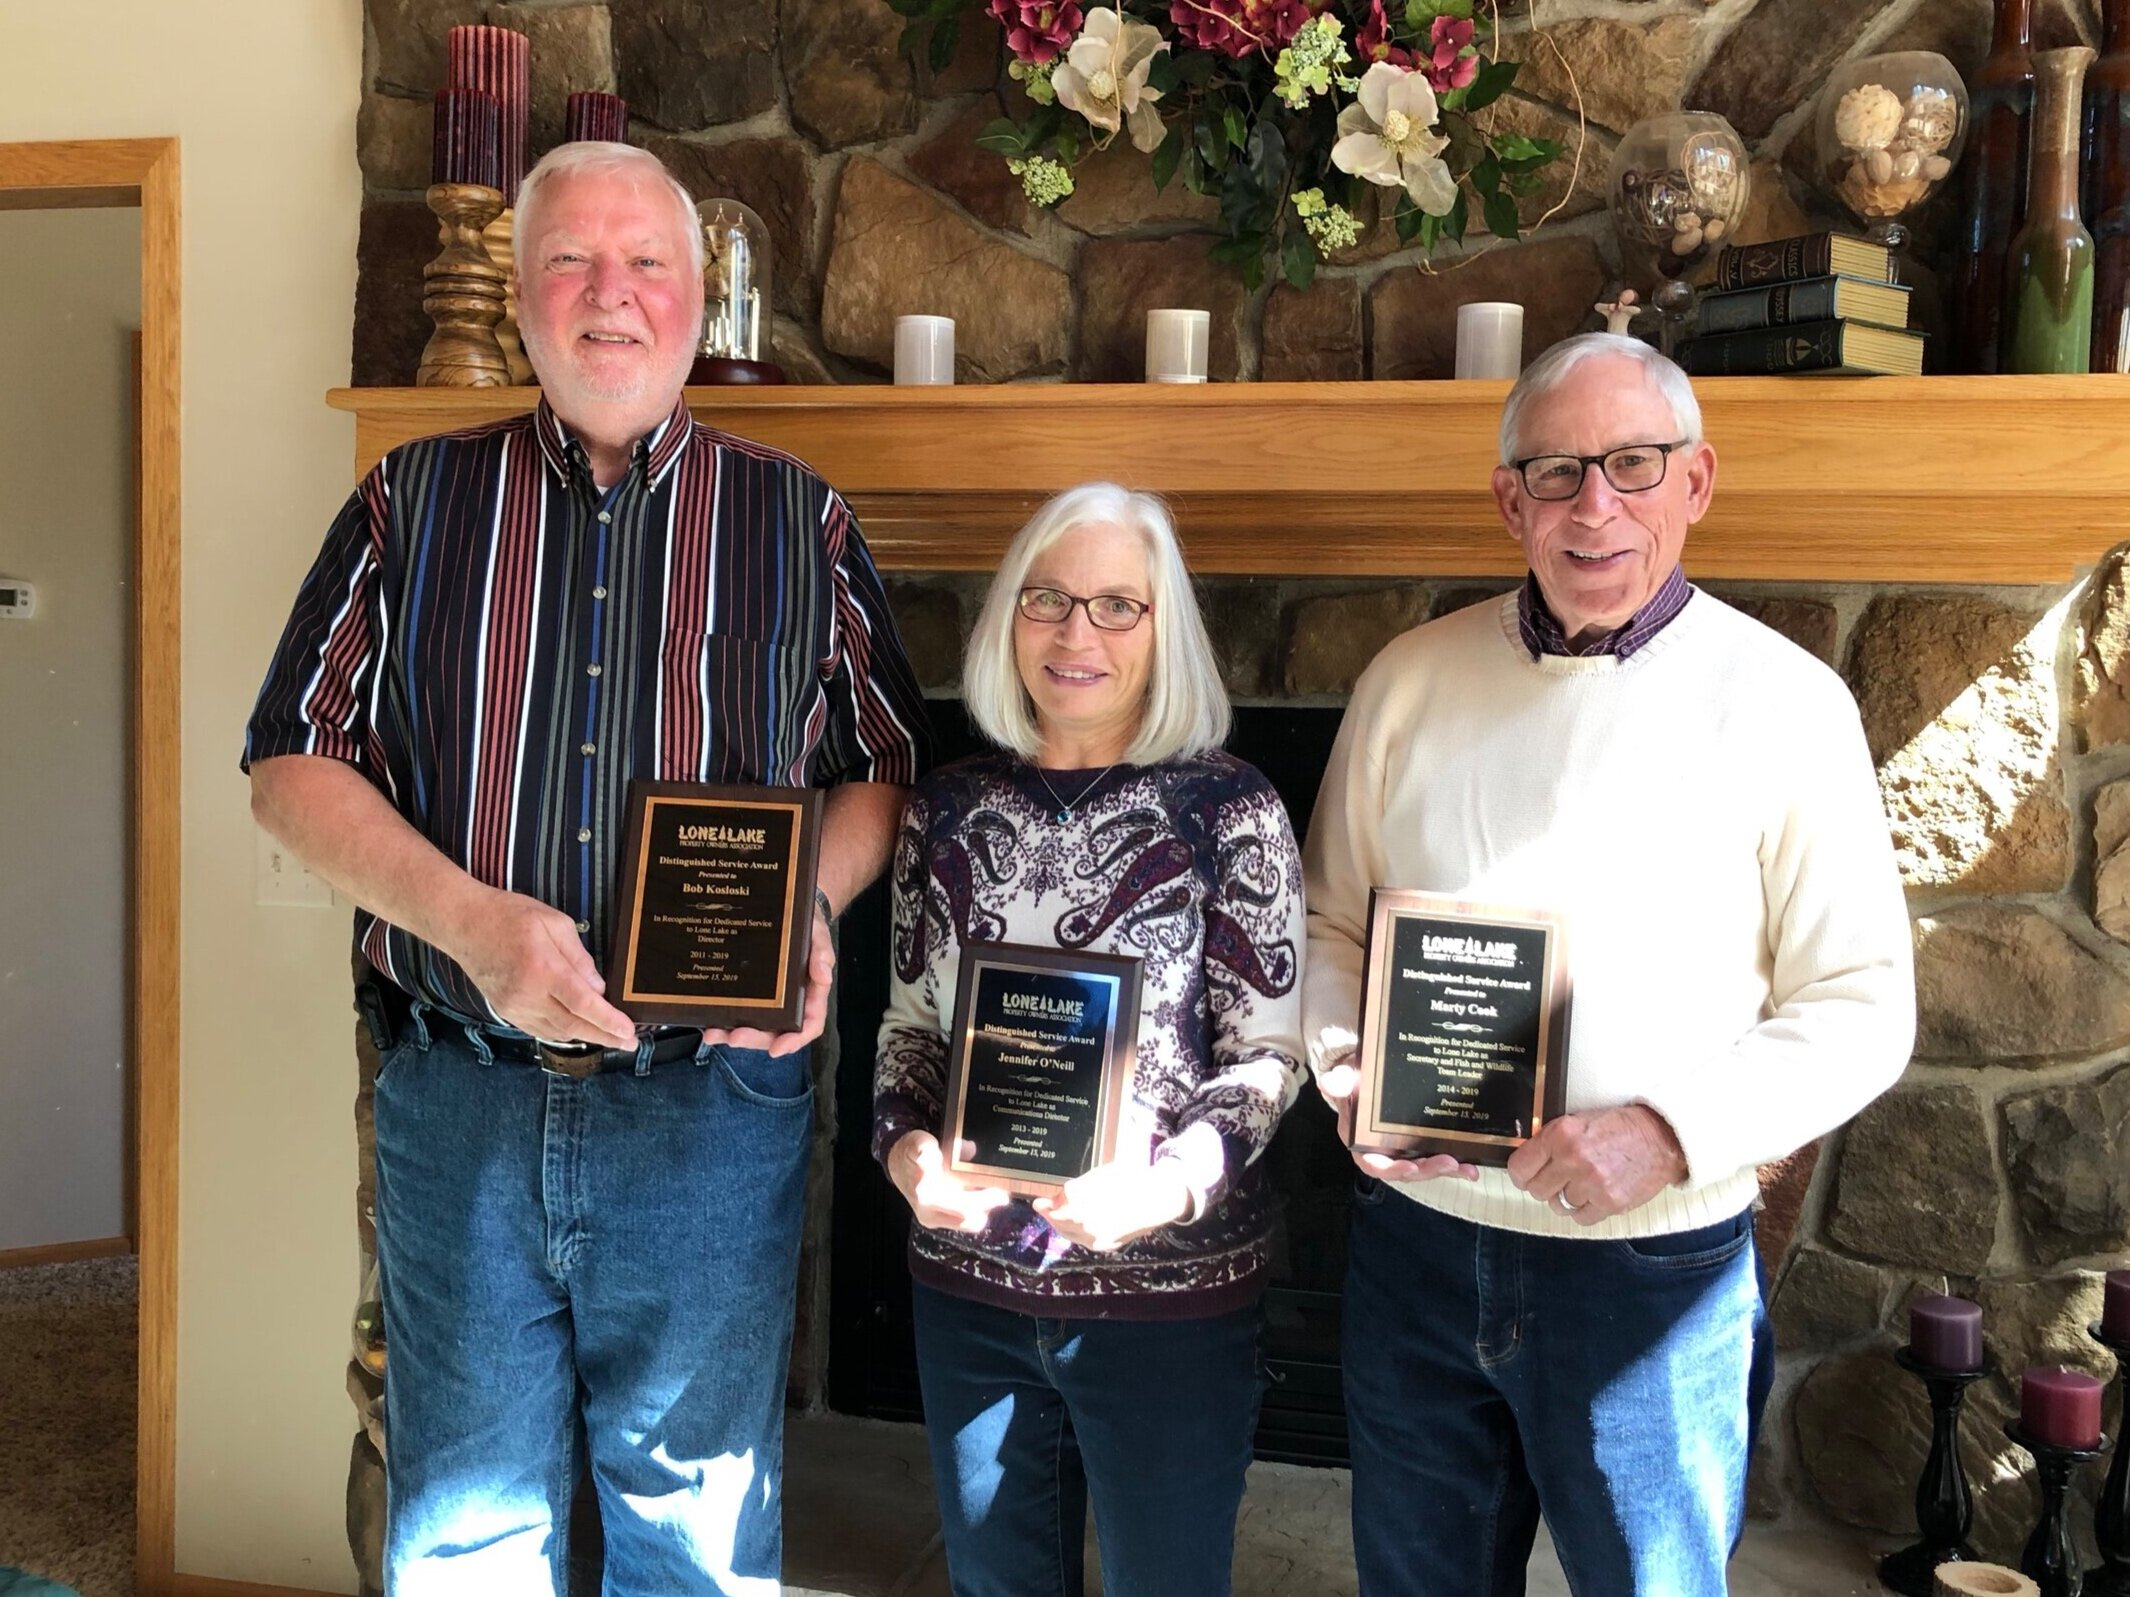 Bob, Jennifer and Marty retire from the board